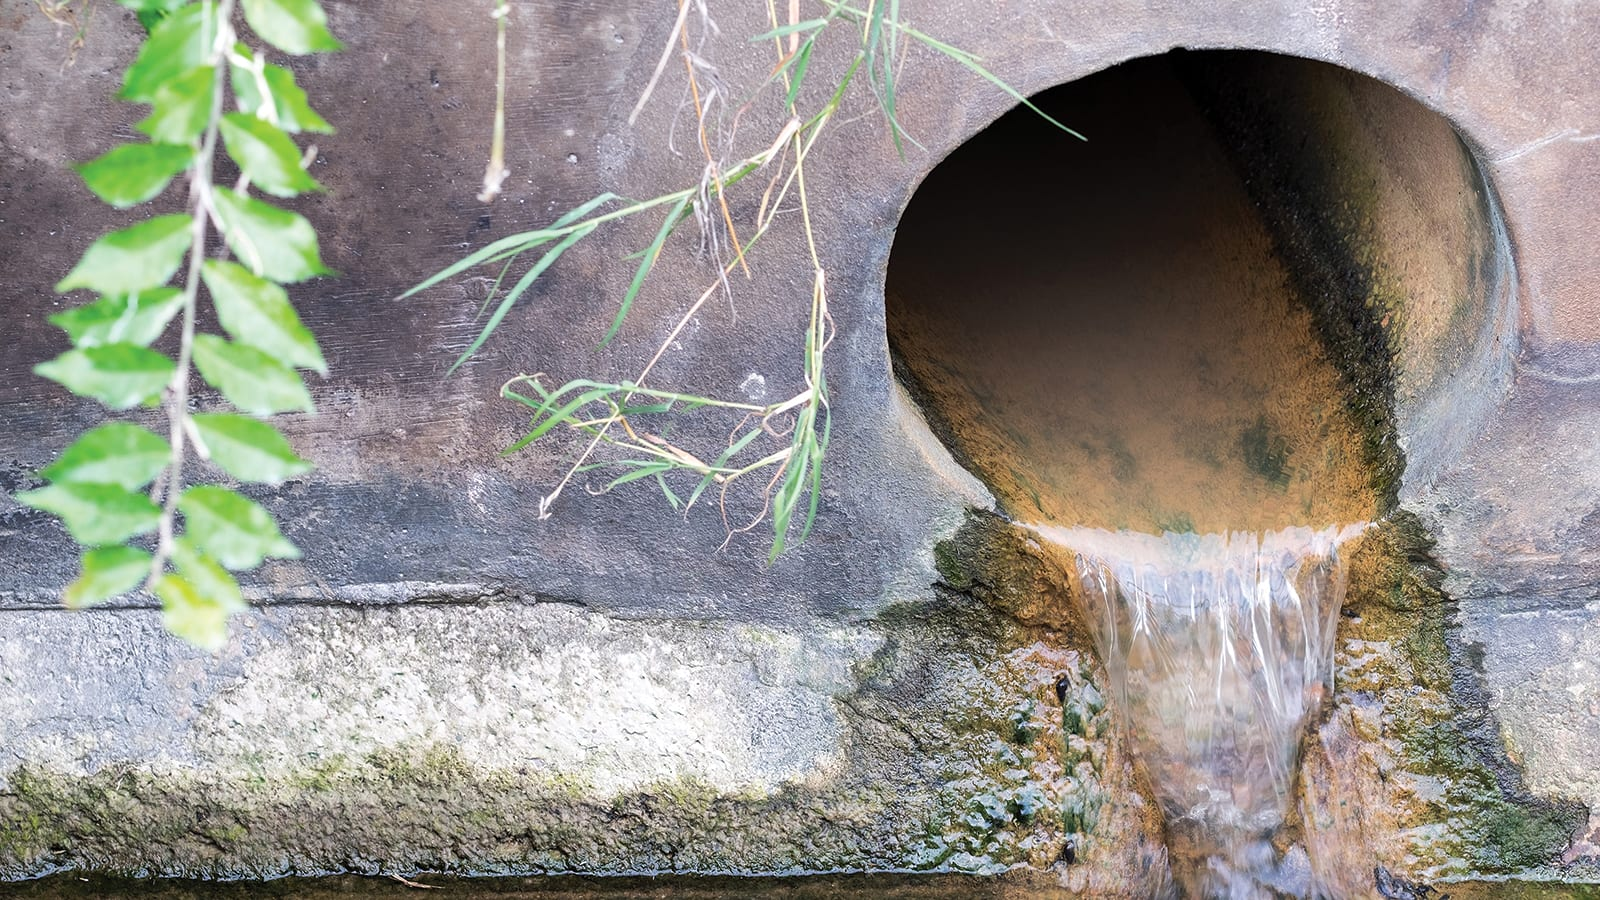 a culvert draining water